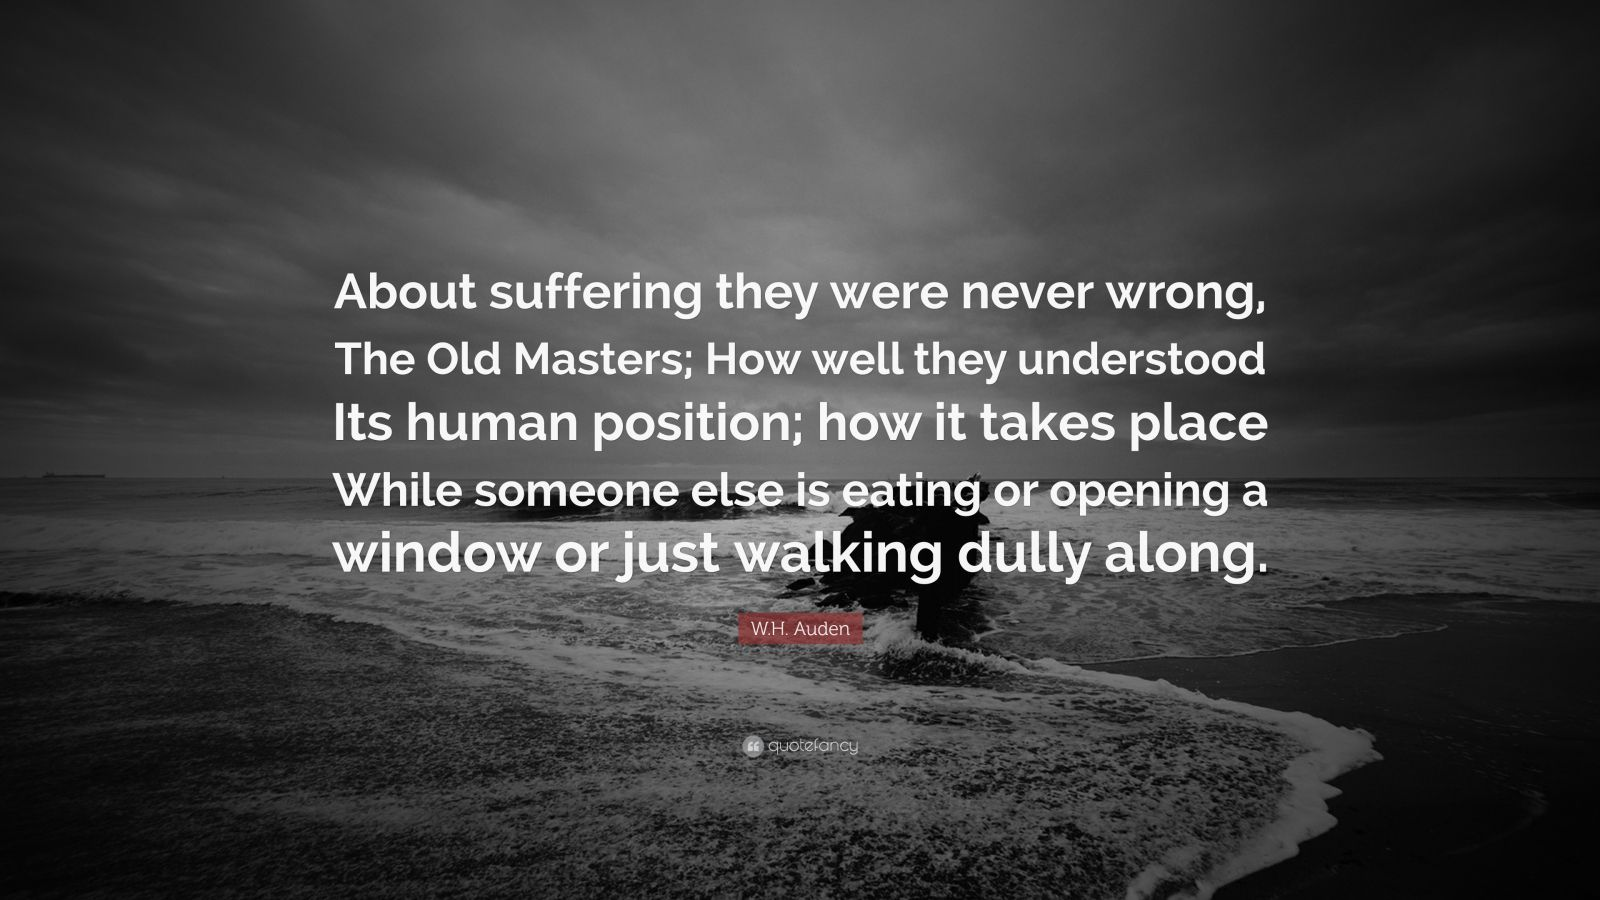 """W.H. Auden Quote: """"About suffering they were never wrong, The Old Masters; How well they understood Its human position; how it takes place While someone else is eating or opening a window or just walking dully along."""""""